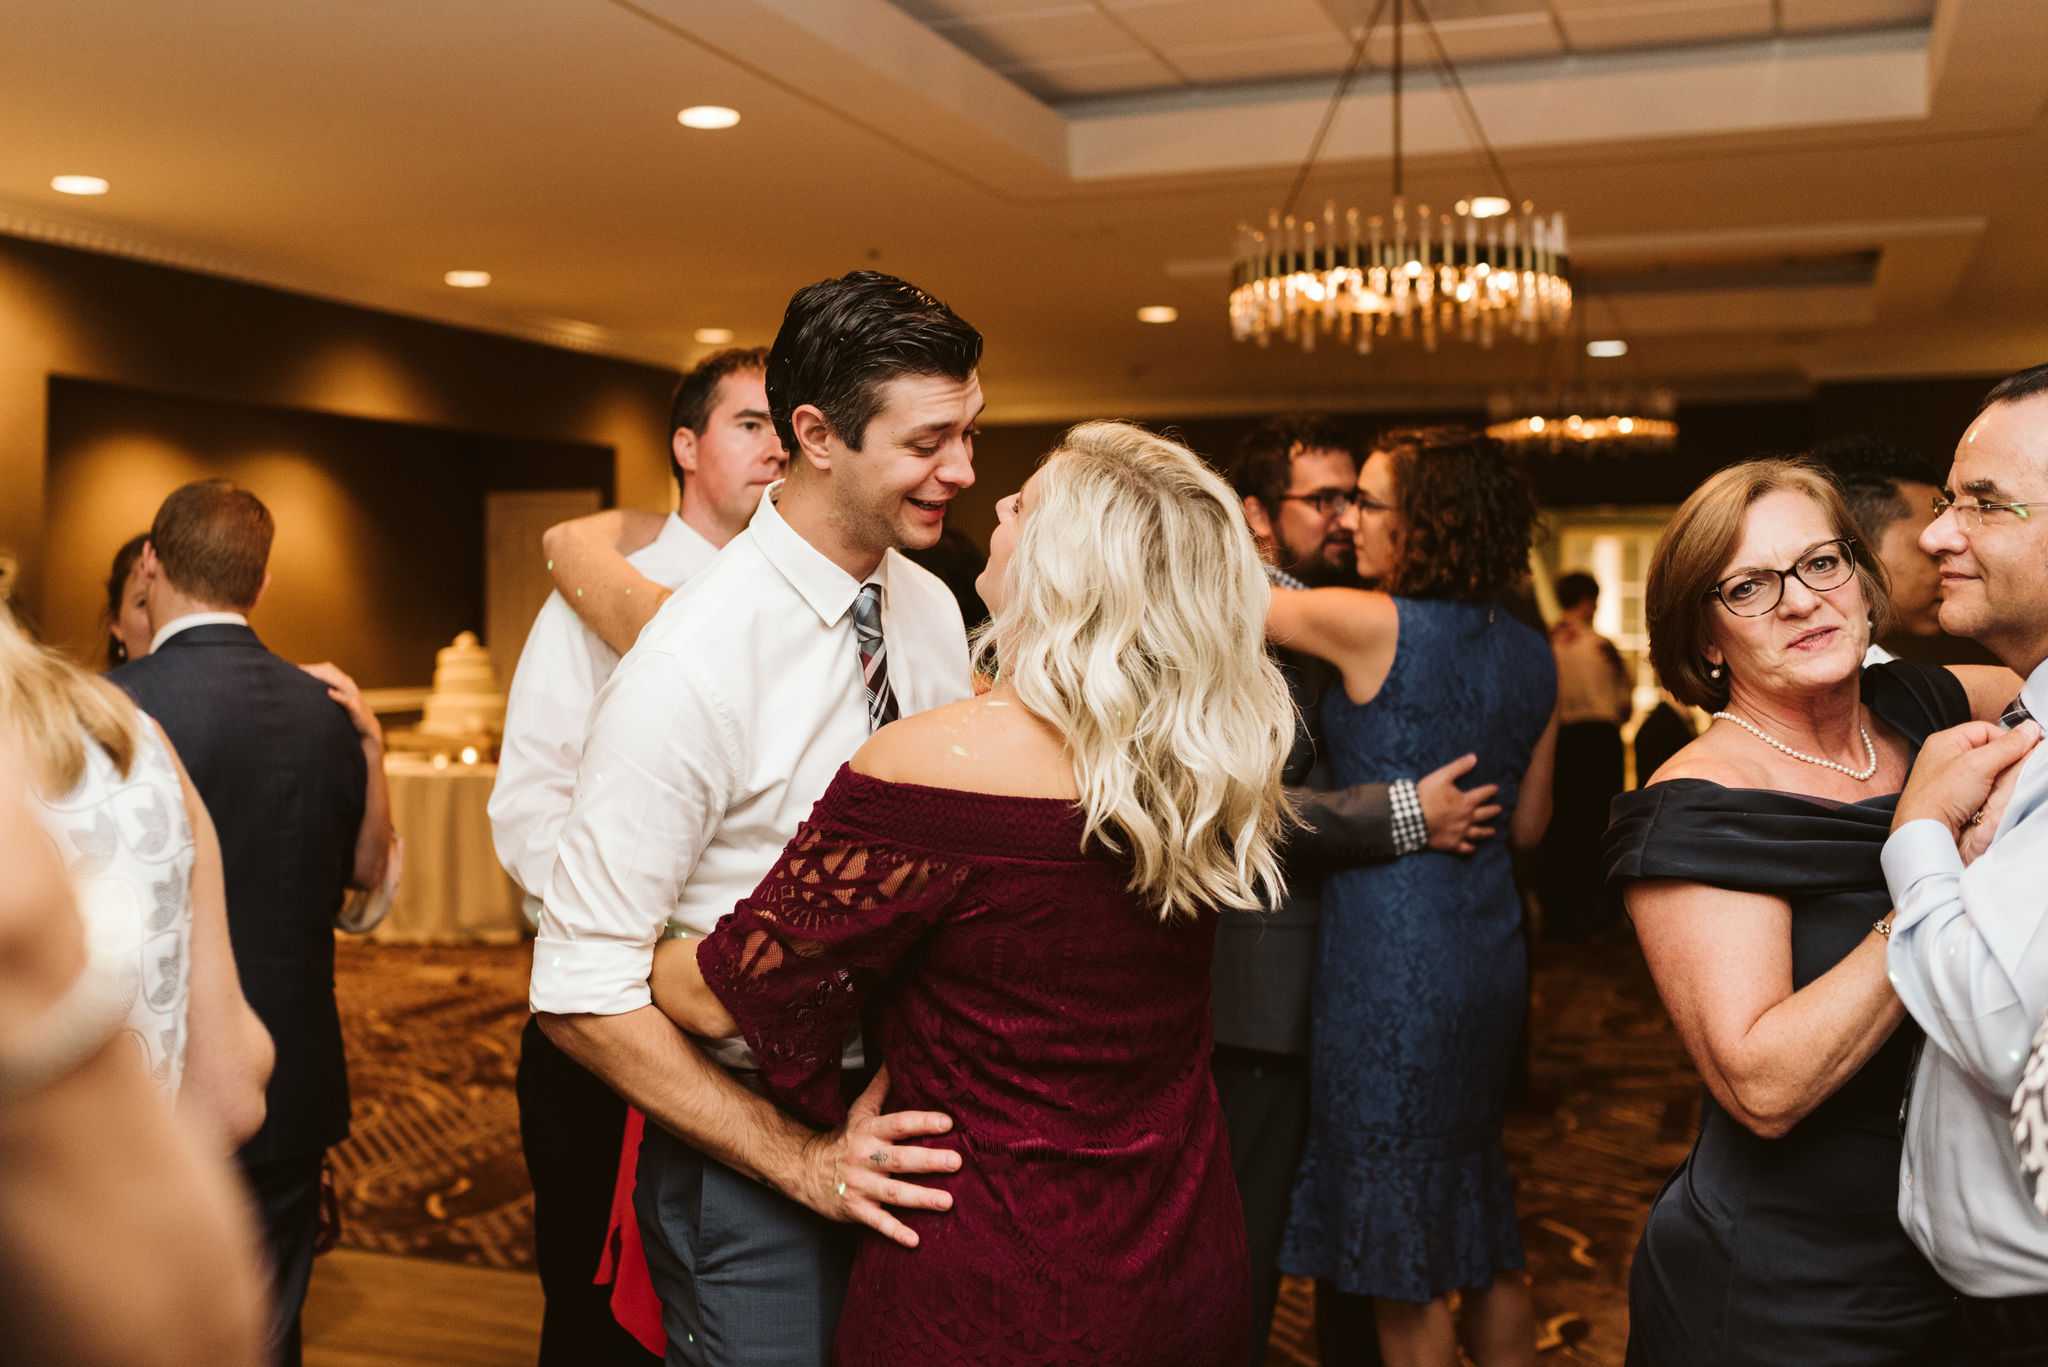 Phoenix Maryland, Baltimore Wedding Photographer, Eagle's Nest Country Club, Classic, Romantic, Couple Dancing Together at Reception